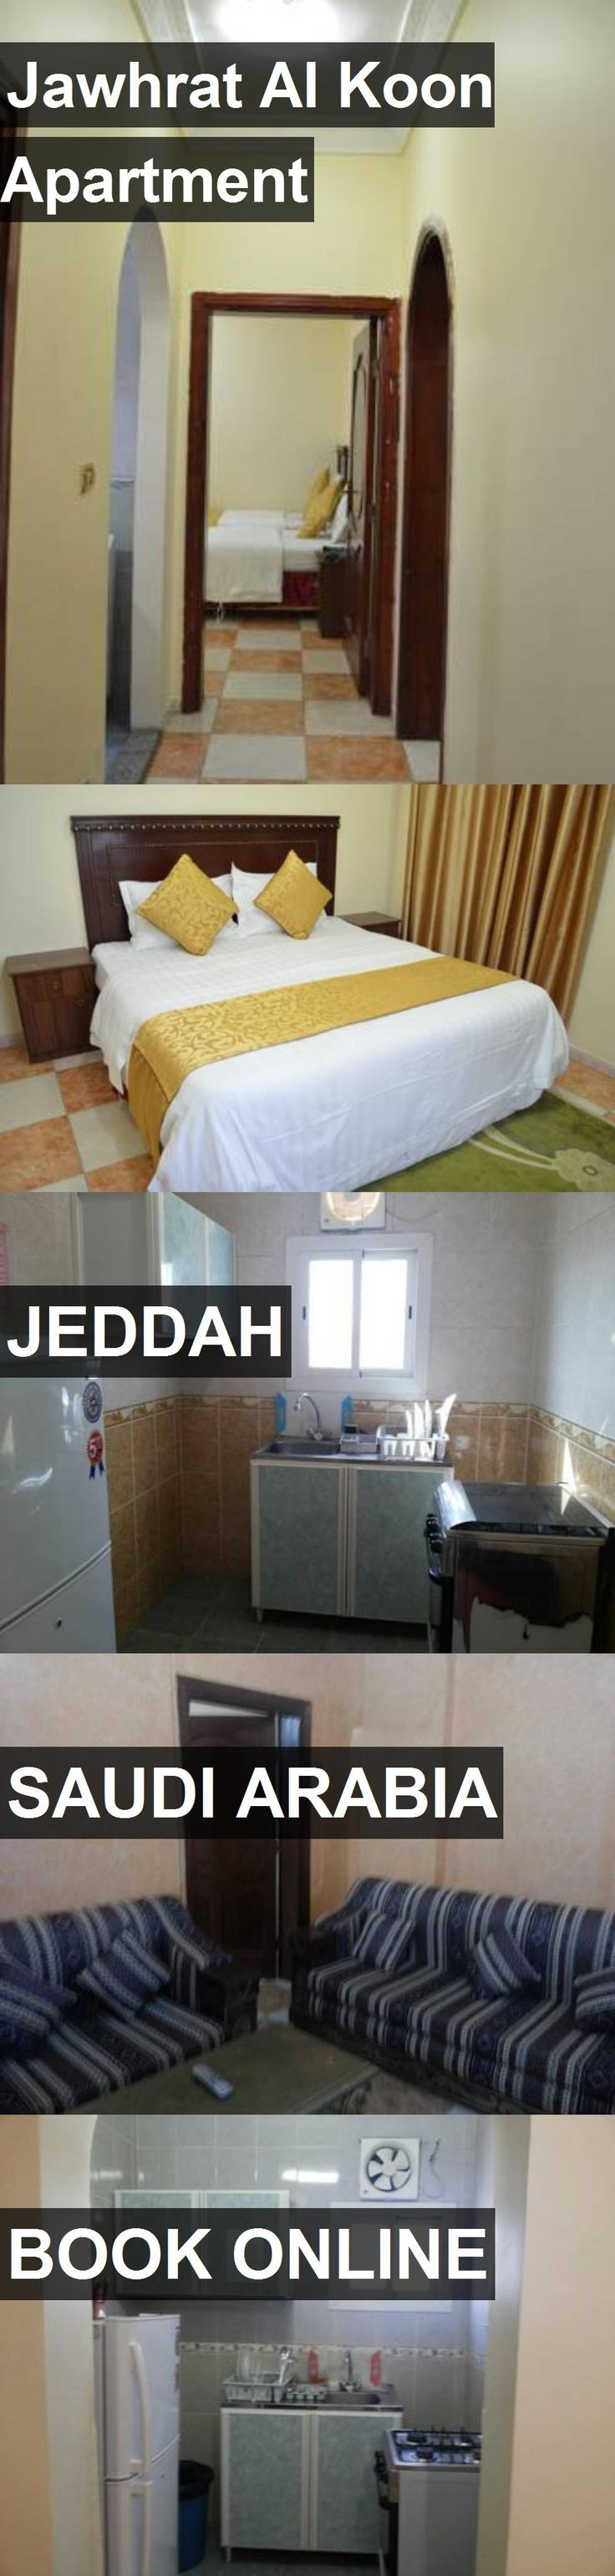 Jawhrat Al Koon Apartment in Jeddah, Saudi Arabia. For more information, photos, reviews and best prices please follow the link. #SaudiArabia #Jeddah #travel #vacation #apartment